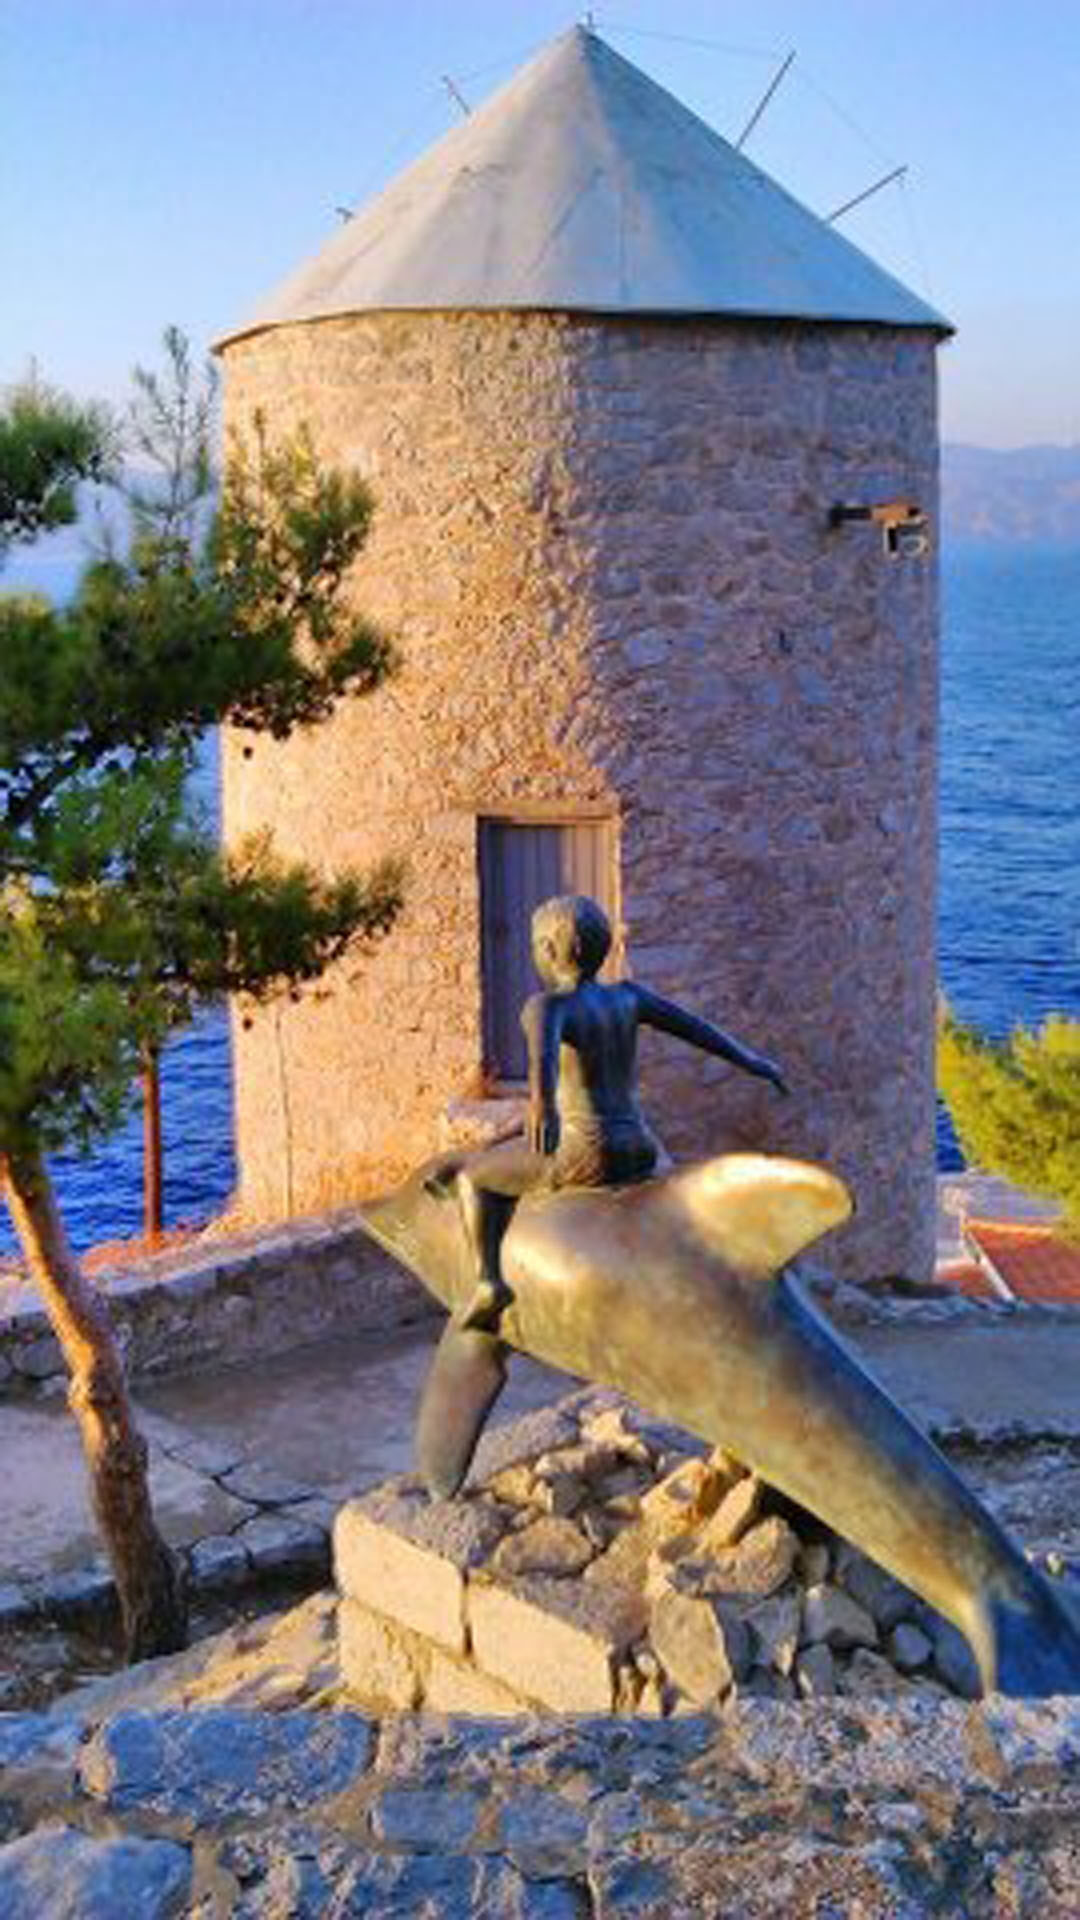 Greece Ancient Mythology Meets Modern Delights The